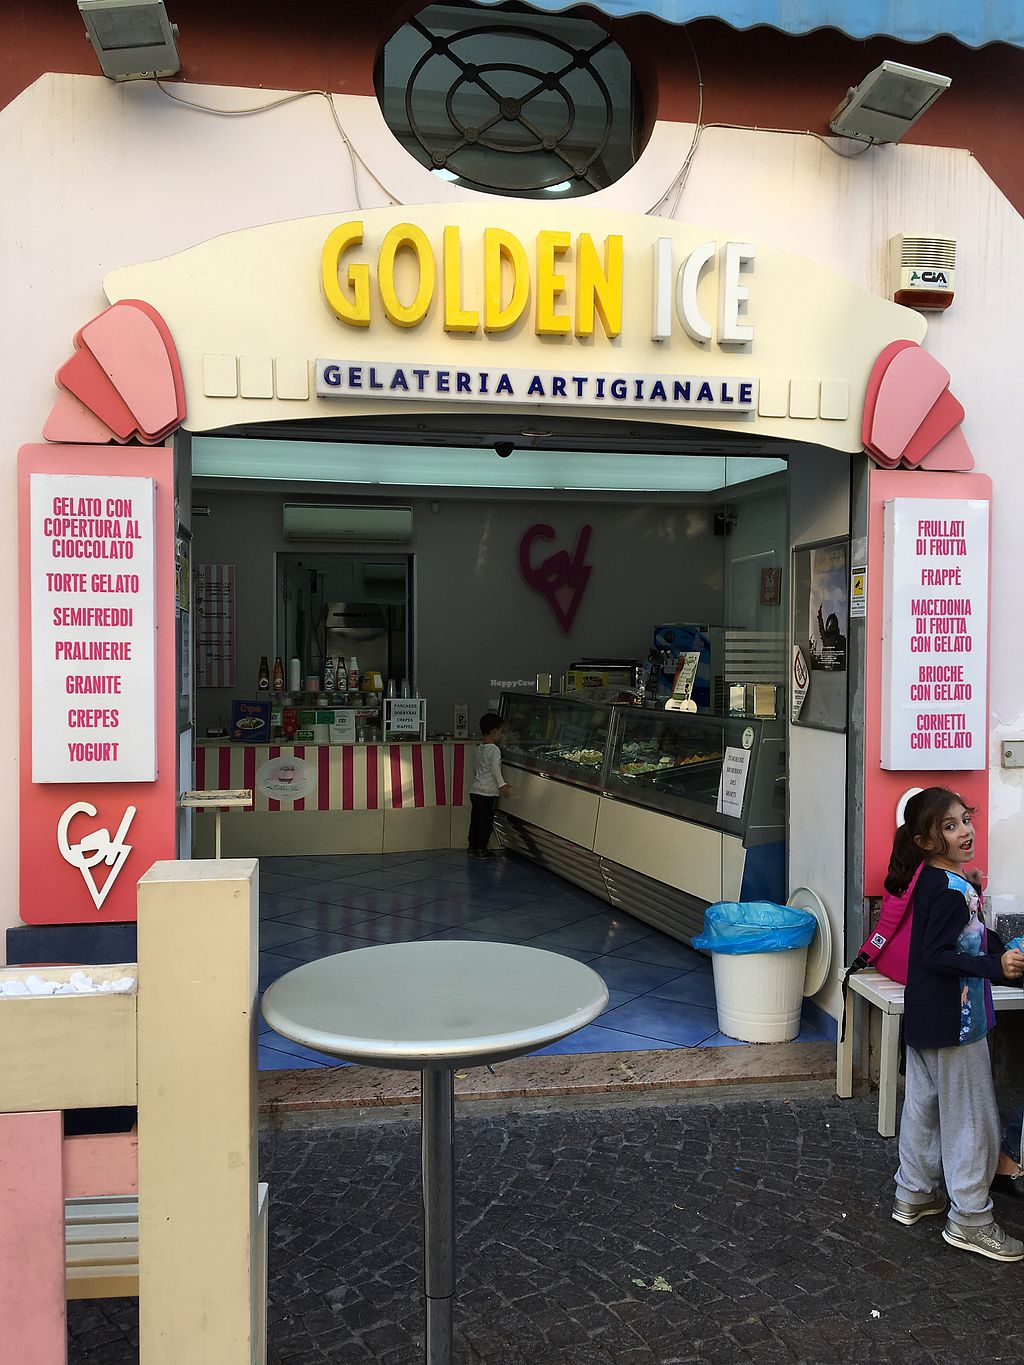 "Photo of Golden Ice Gelateria  by <a href=""/members/profile/JJones315"">JJones315</a> <br/>Outside  <br/> October 19, 2017  - <a href='/contact/abuse/image/59160/316741'>Report</a>"